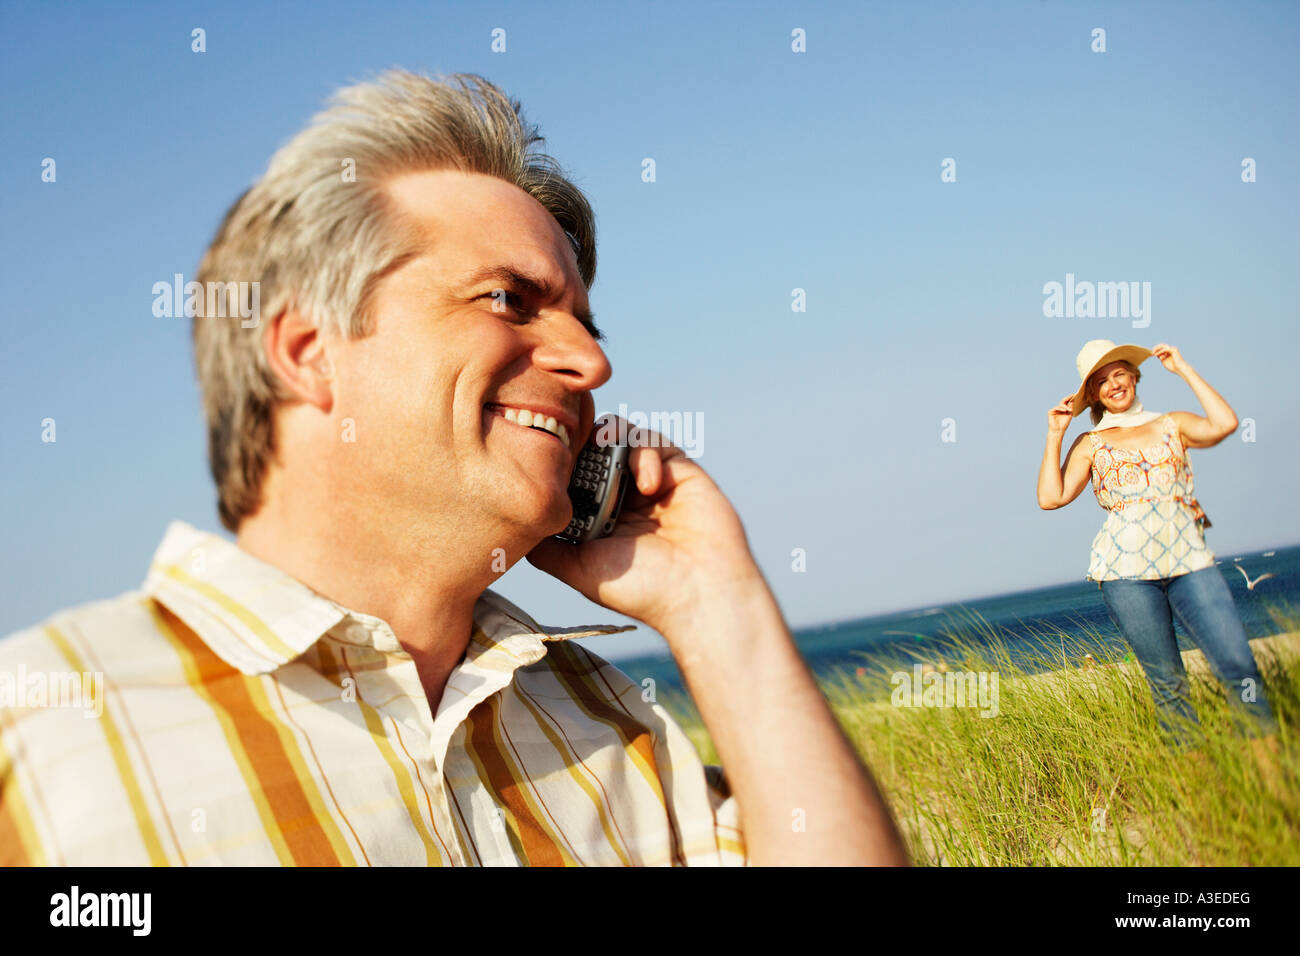 Close-up of a mature man talking on a mobile phone with a mature woman standing in the background - Stock Image